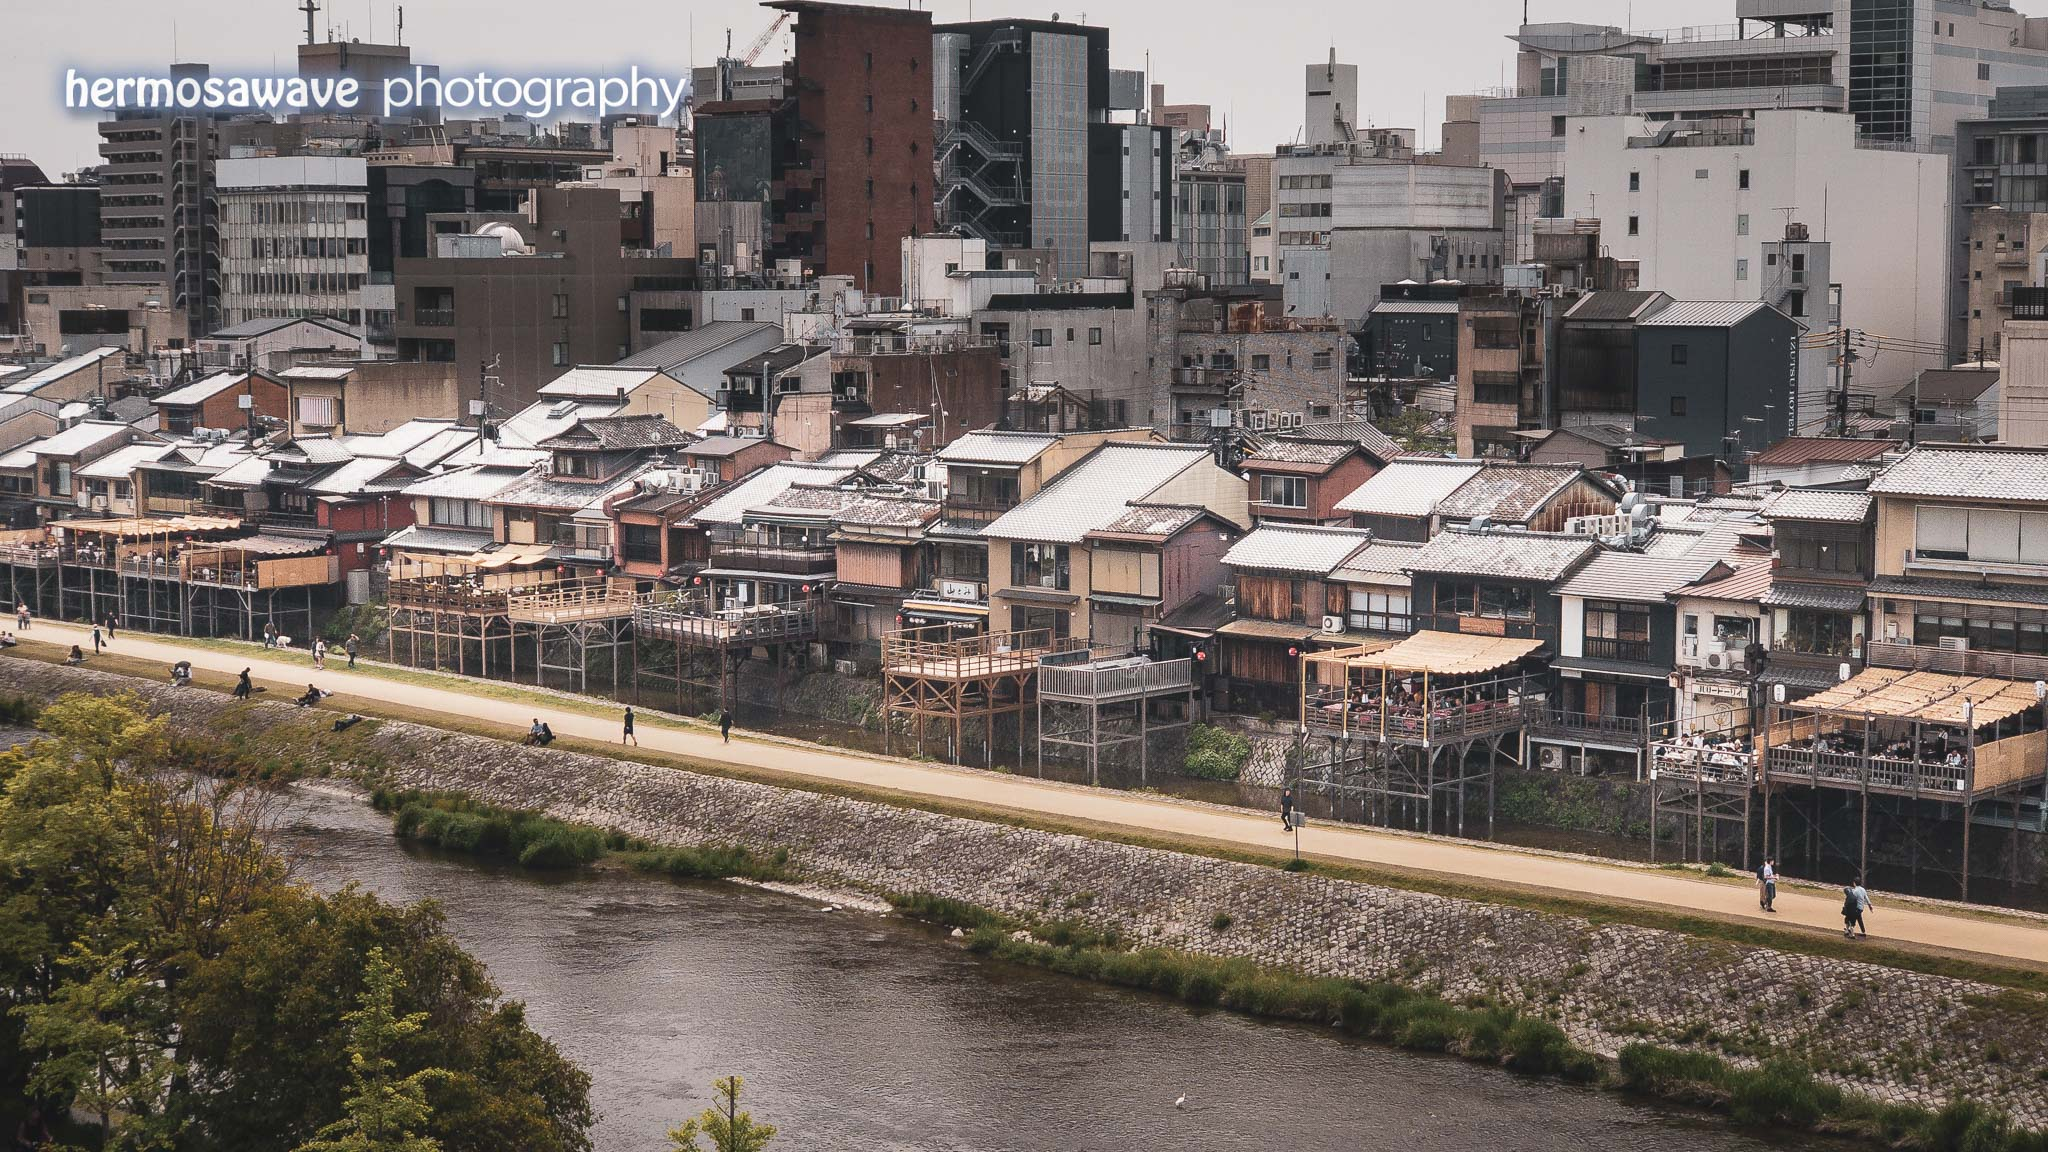 Summer Decks on the Kamogawa • 鴨川の川床